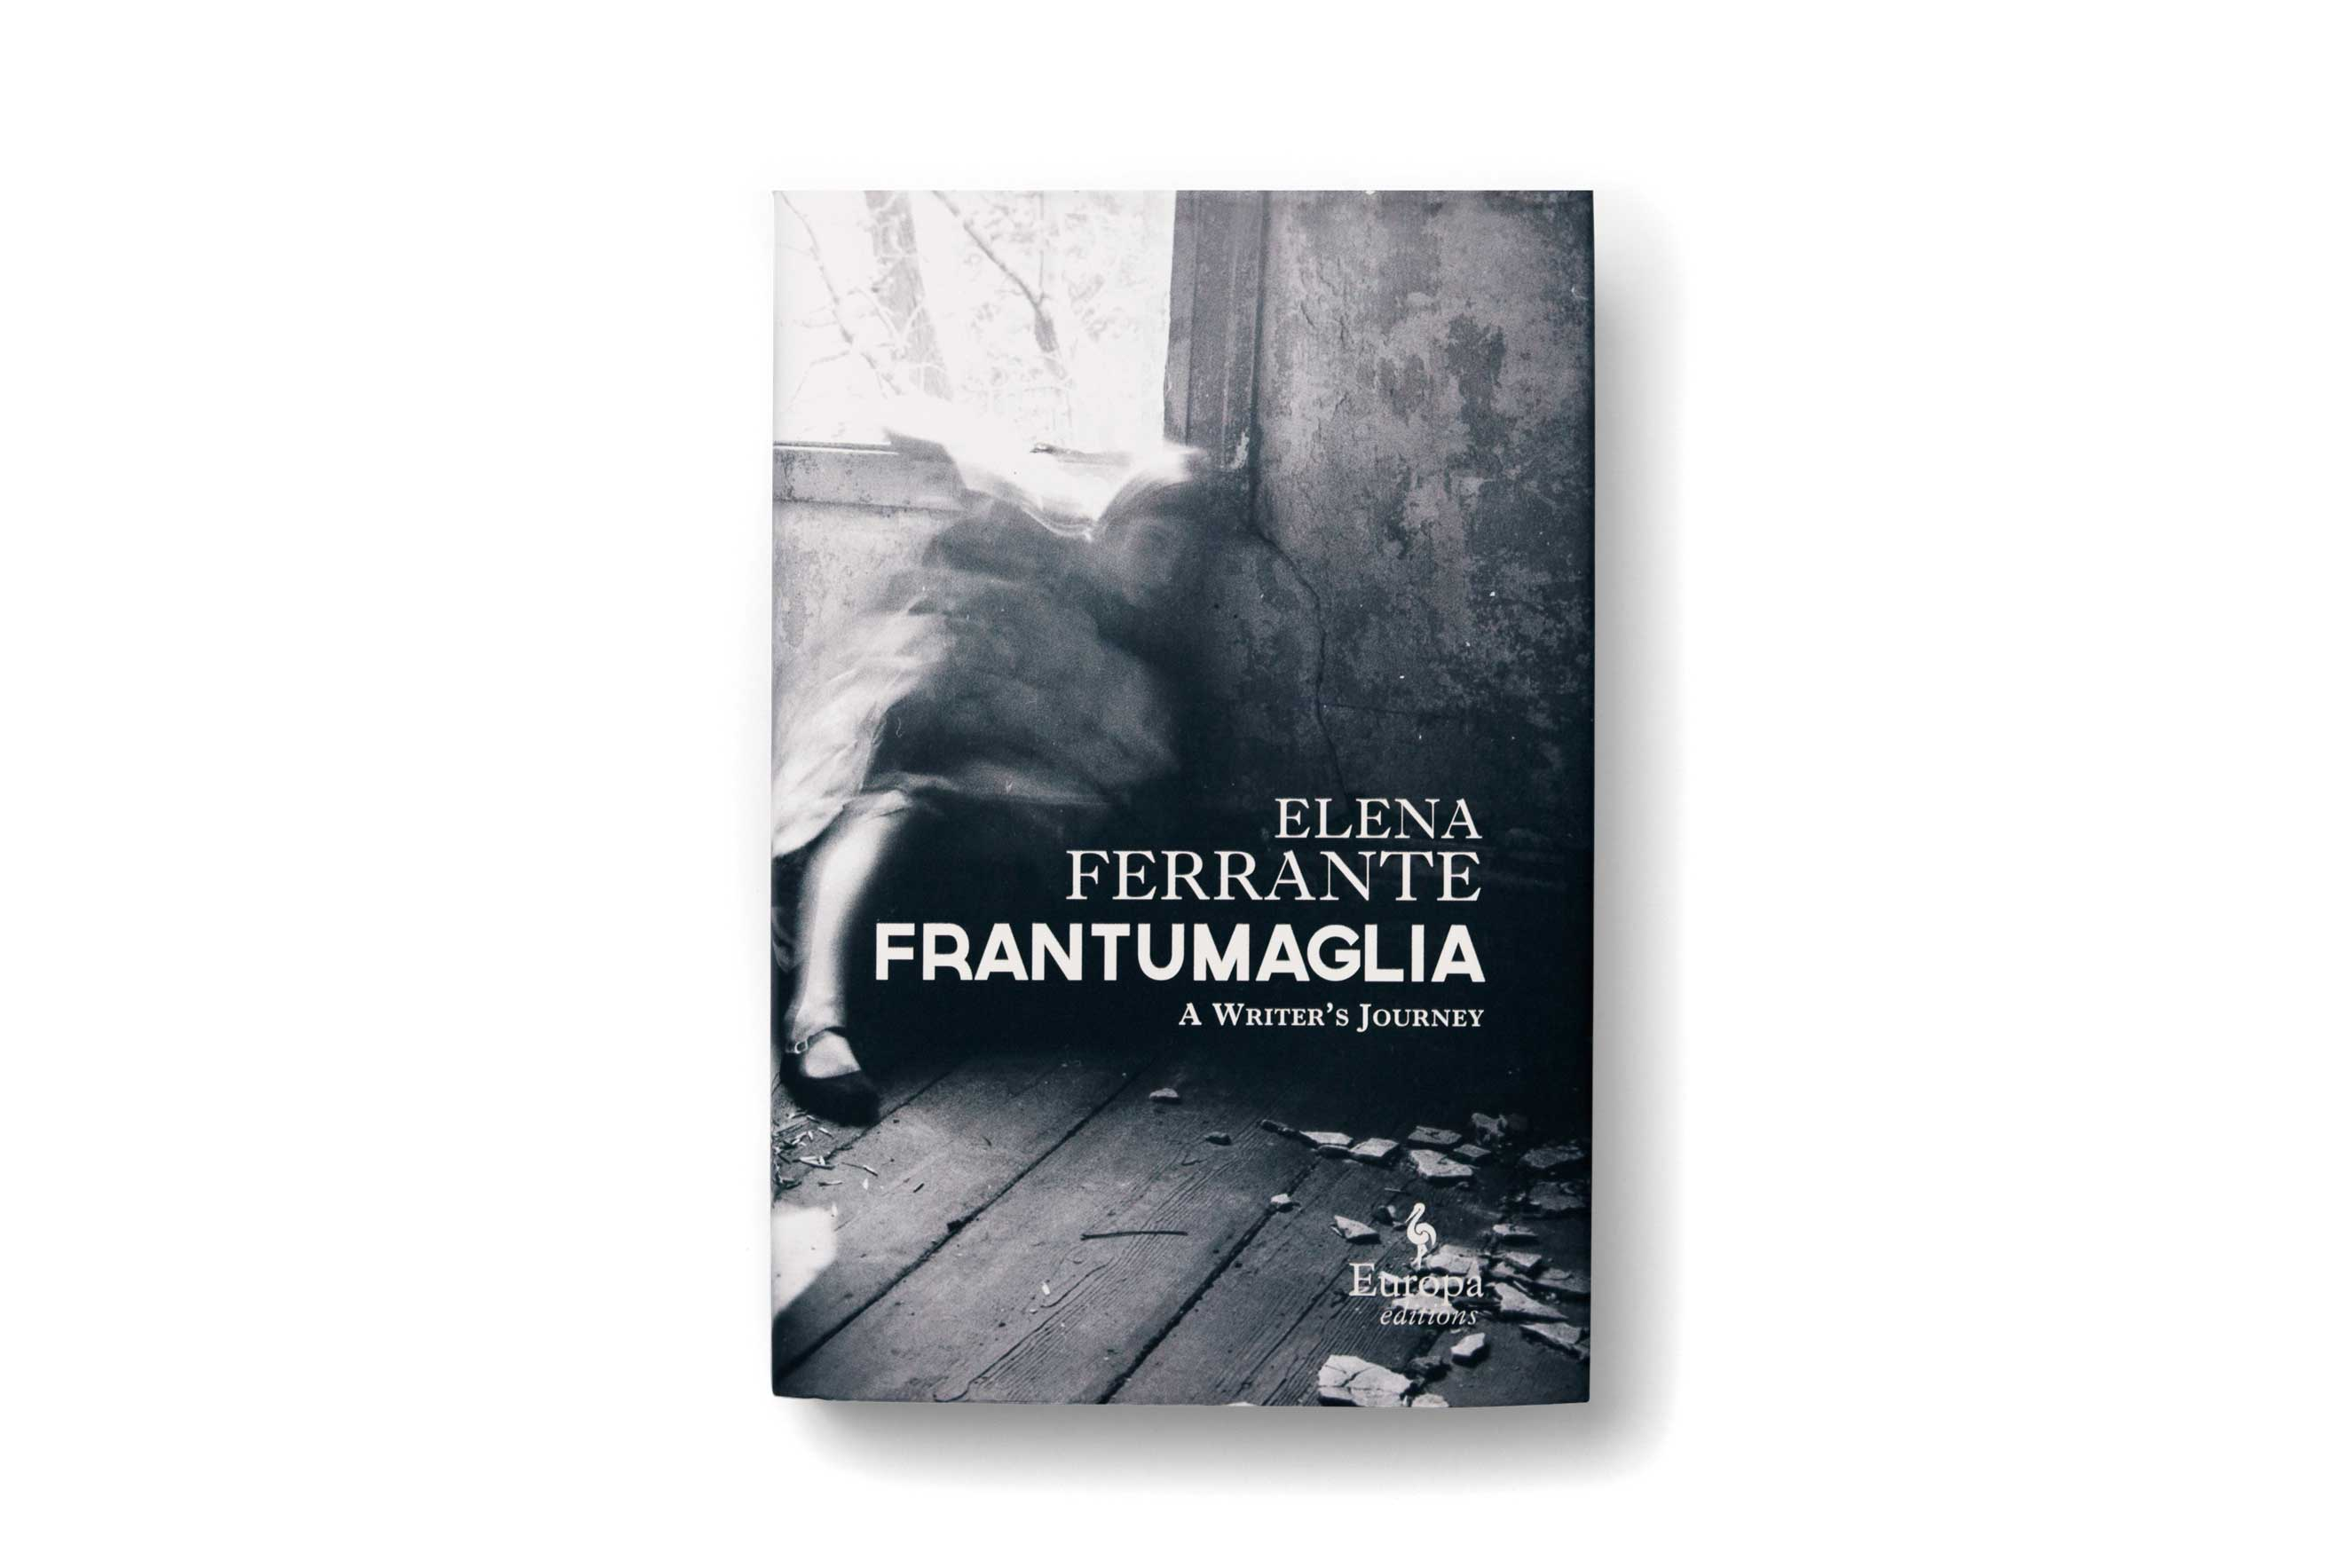 Book cover for 'Frantumaglia' by Elena Ferrante